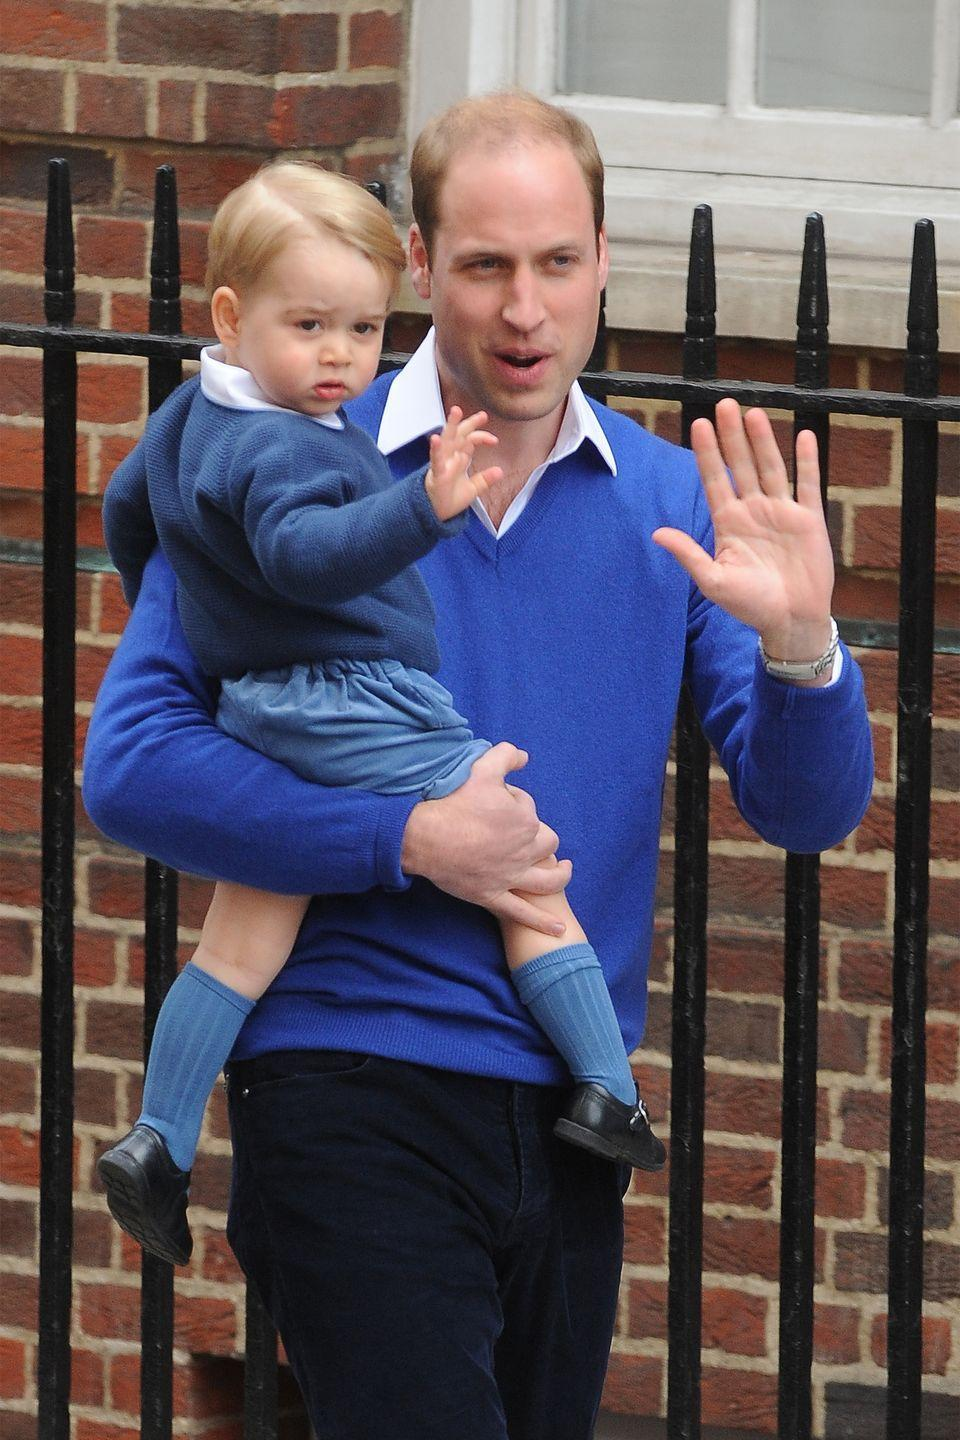 <p>The Duke of Cambridge arrives with Prince George at the Lindo Wing of St. Mary's Hospital to welcome newly-born Princess Charlotte.</p>